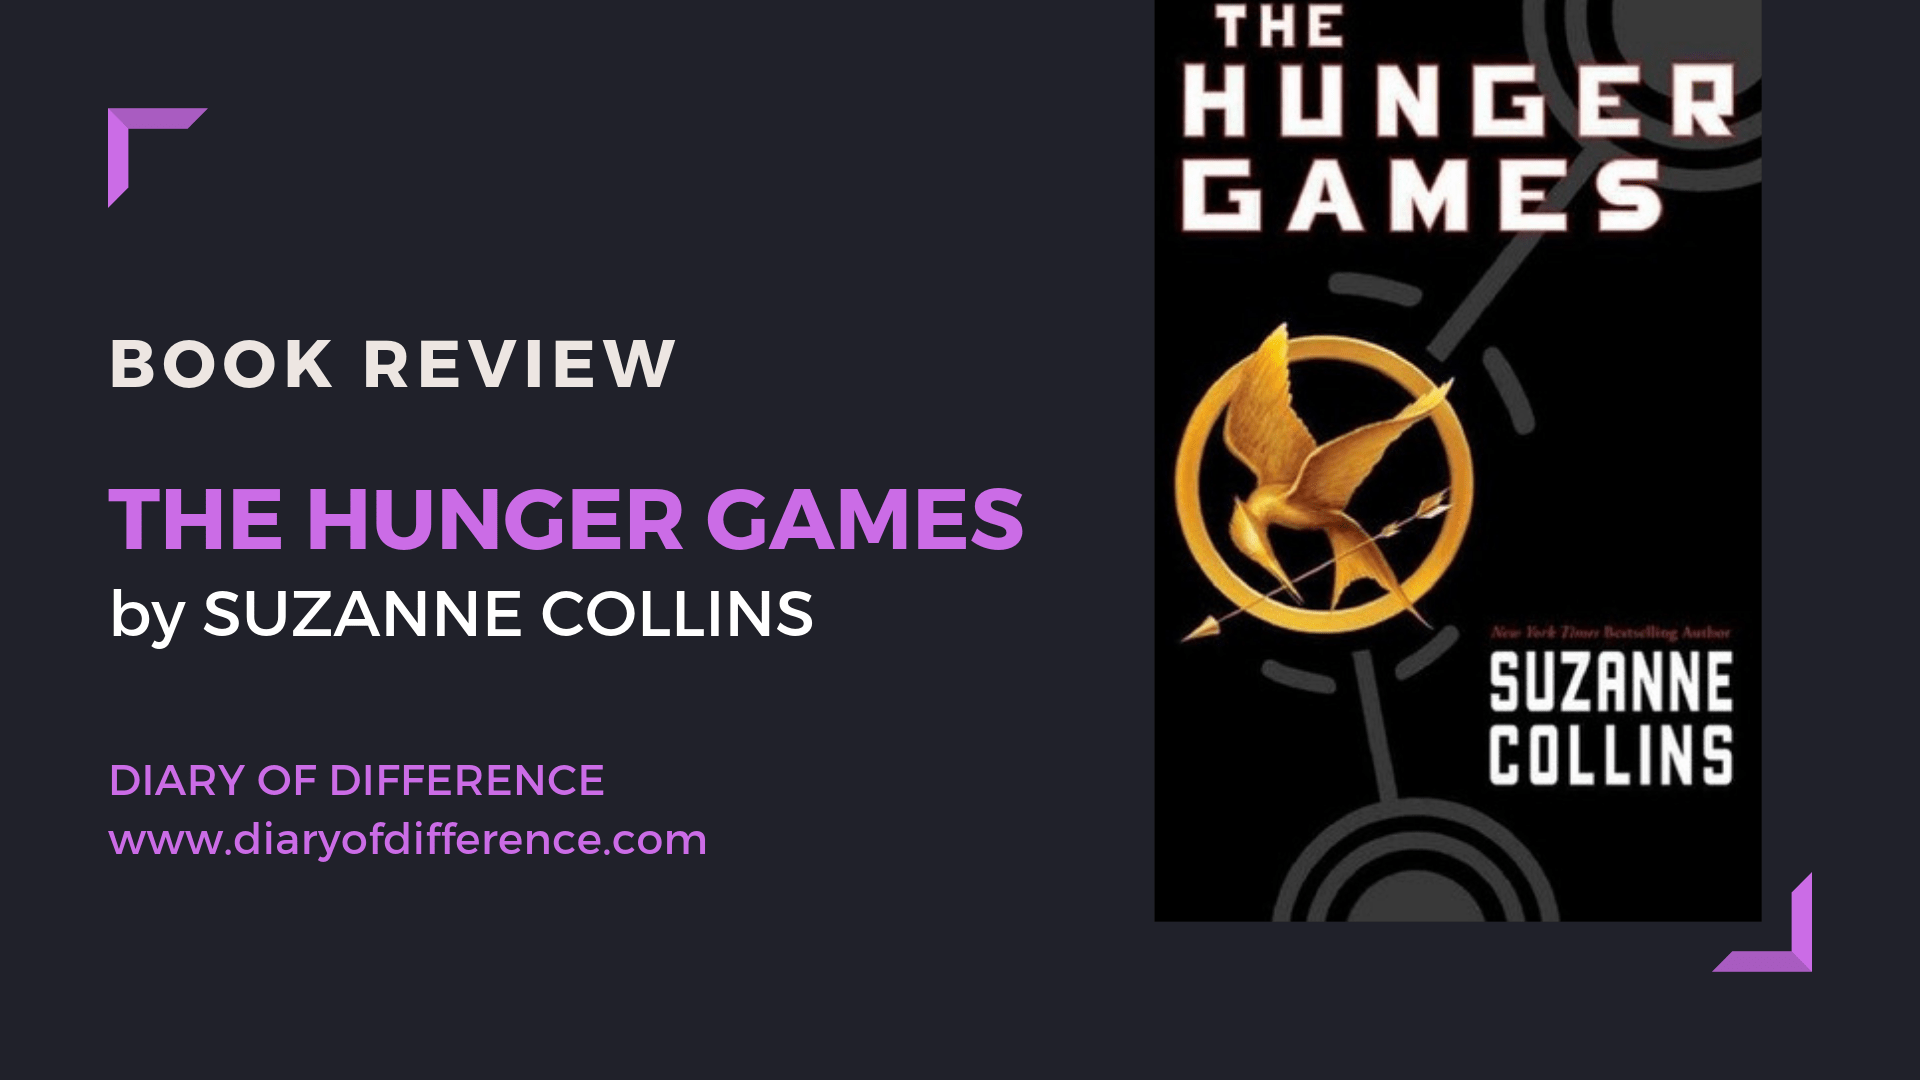 The Hunger Games Suzanne Collins Diary Of Difference